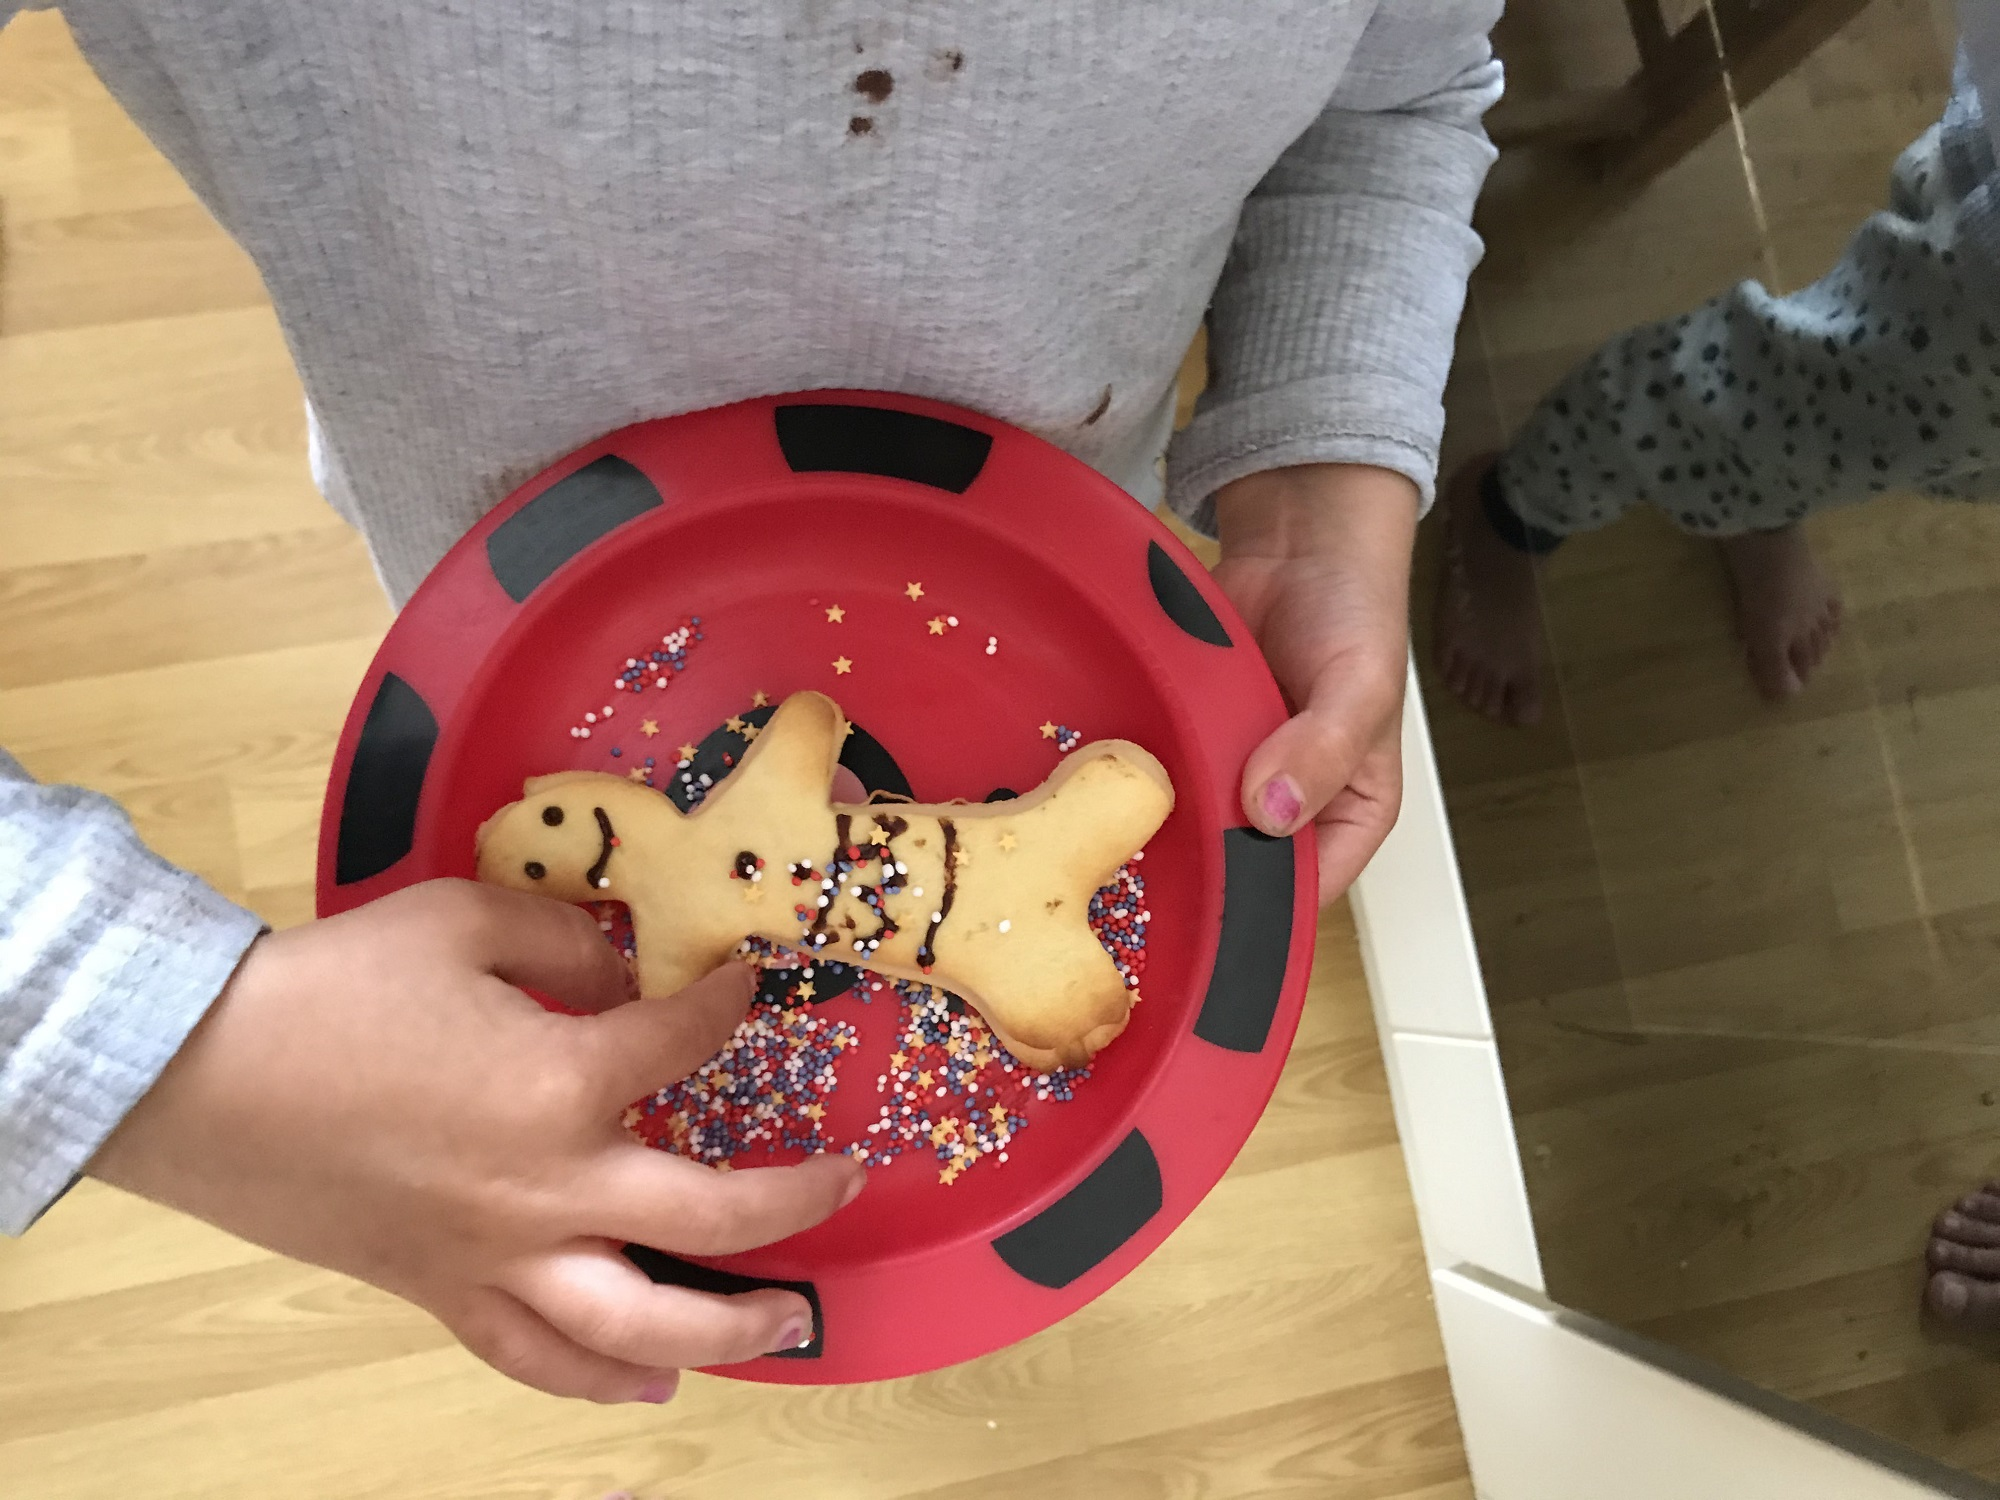 A small child holds a plate with a cookie shaped like a human on